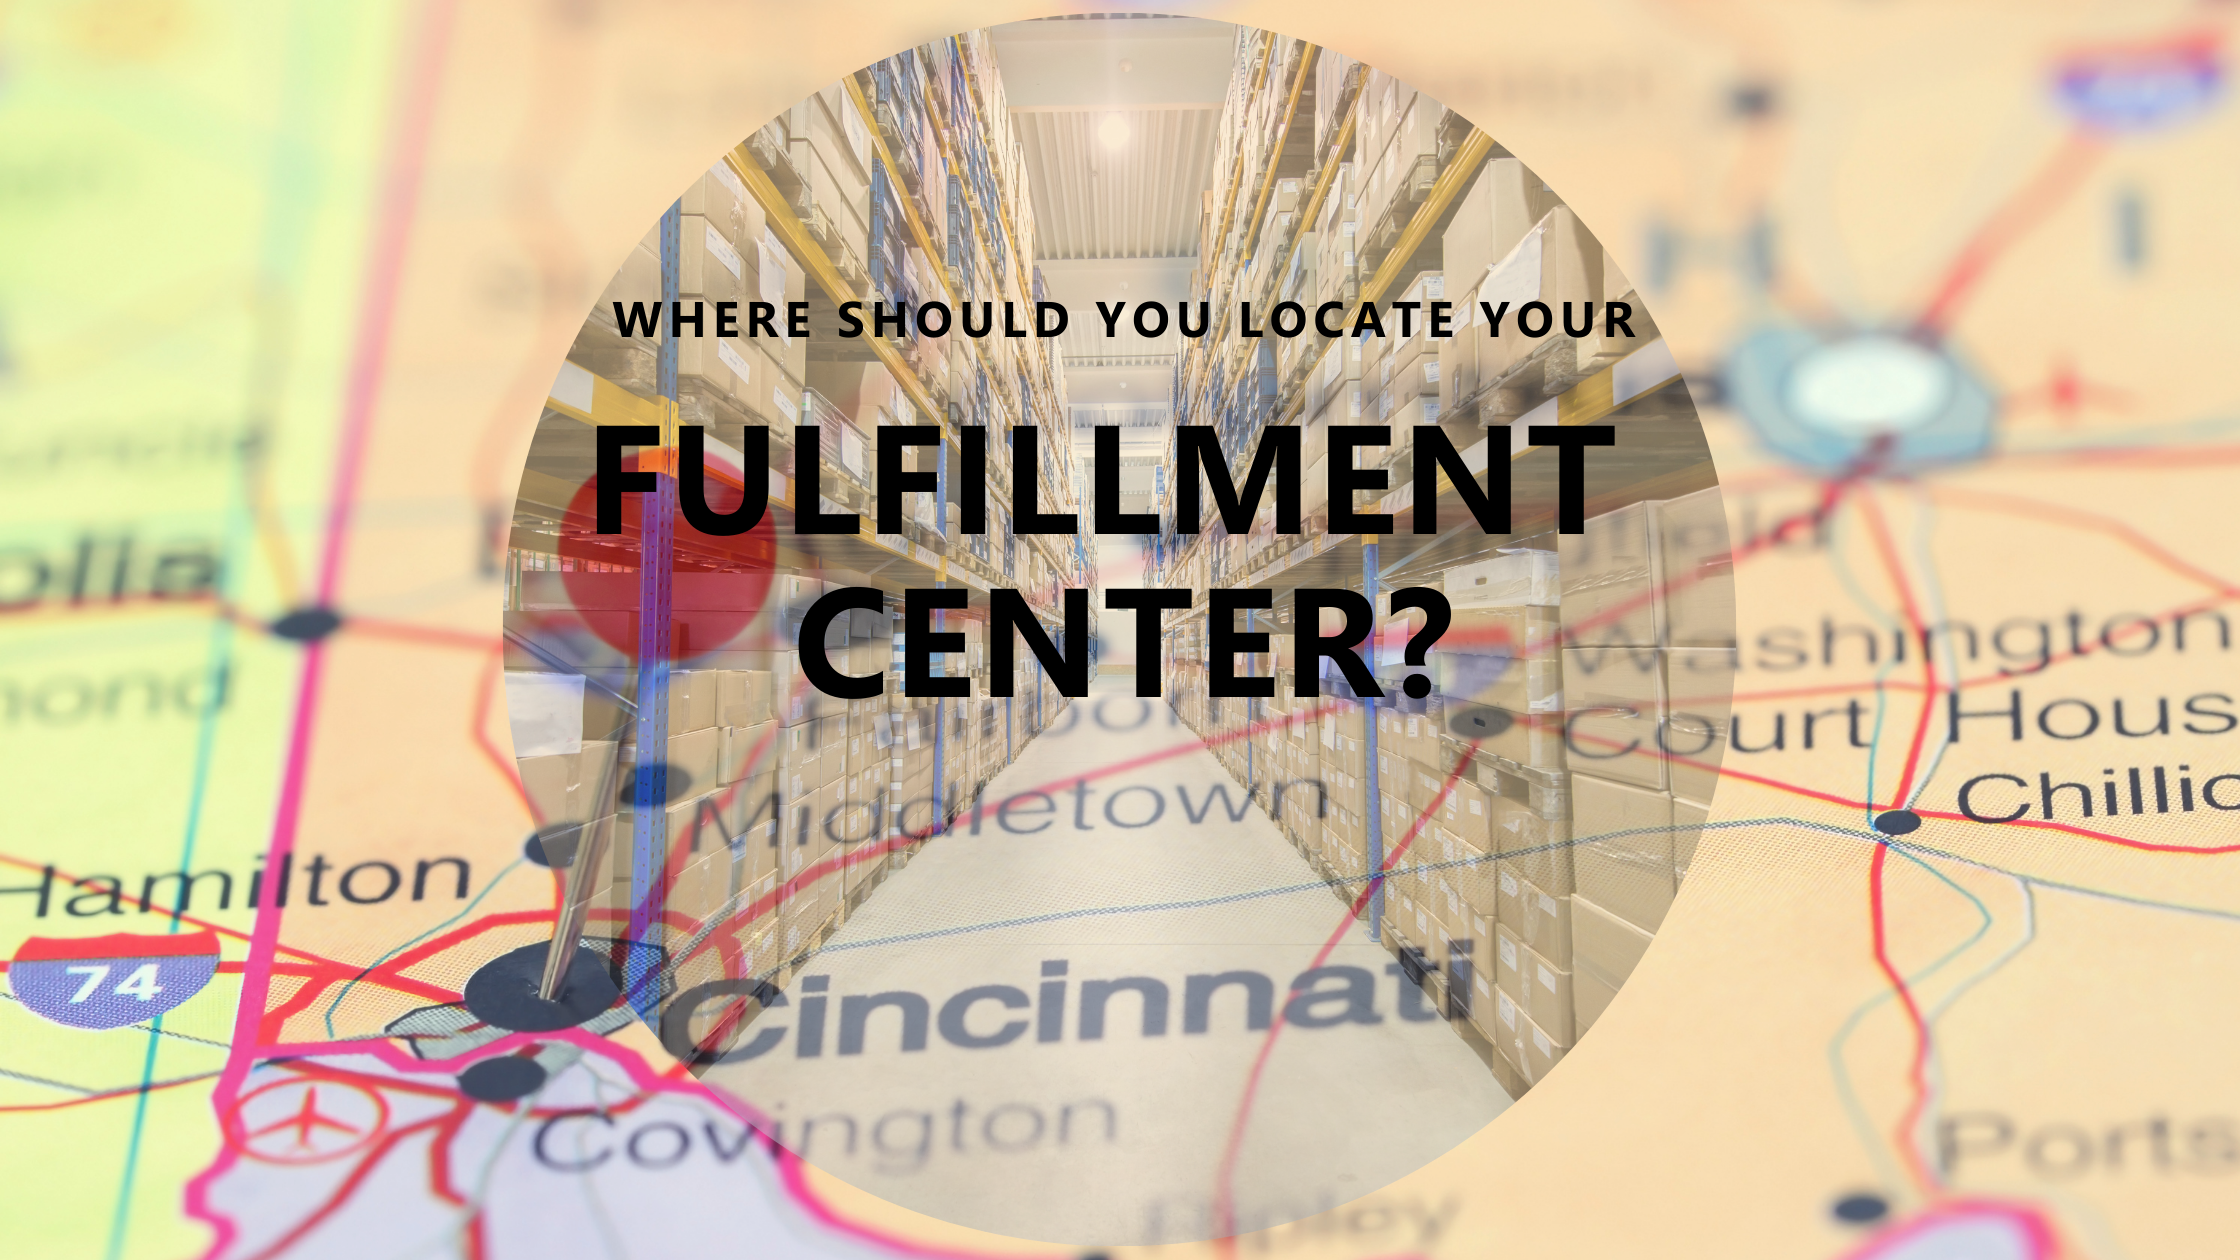 WHERE SHOULD YOU LOCATE YOUR